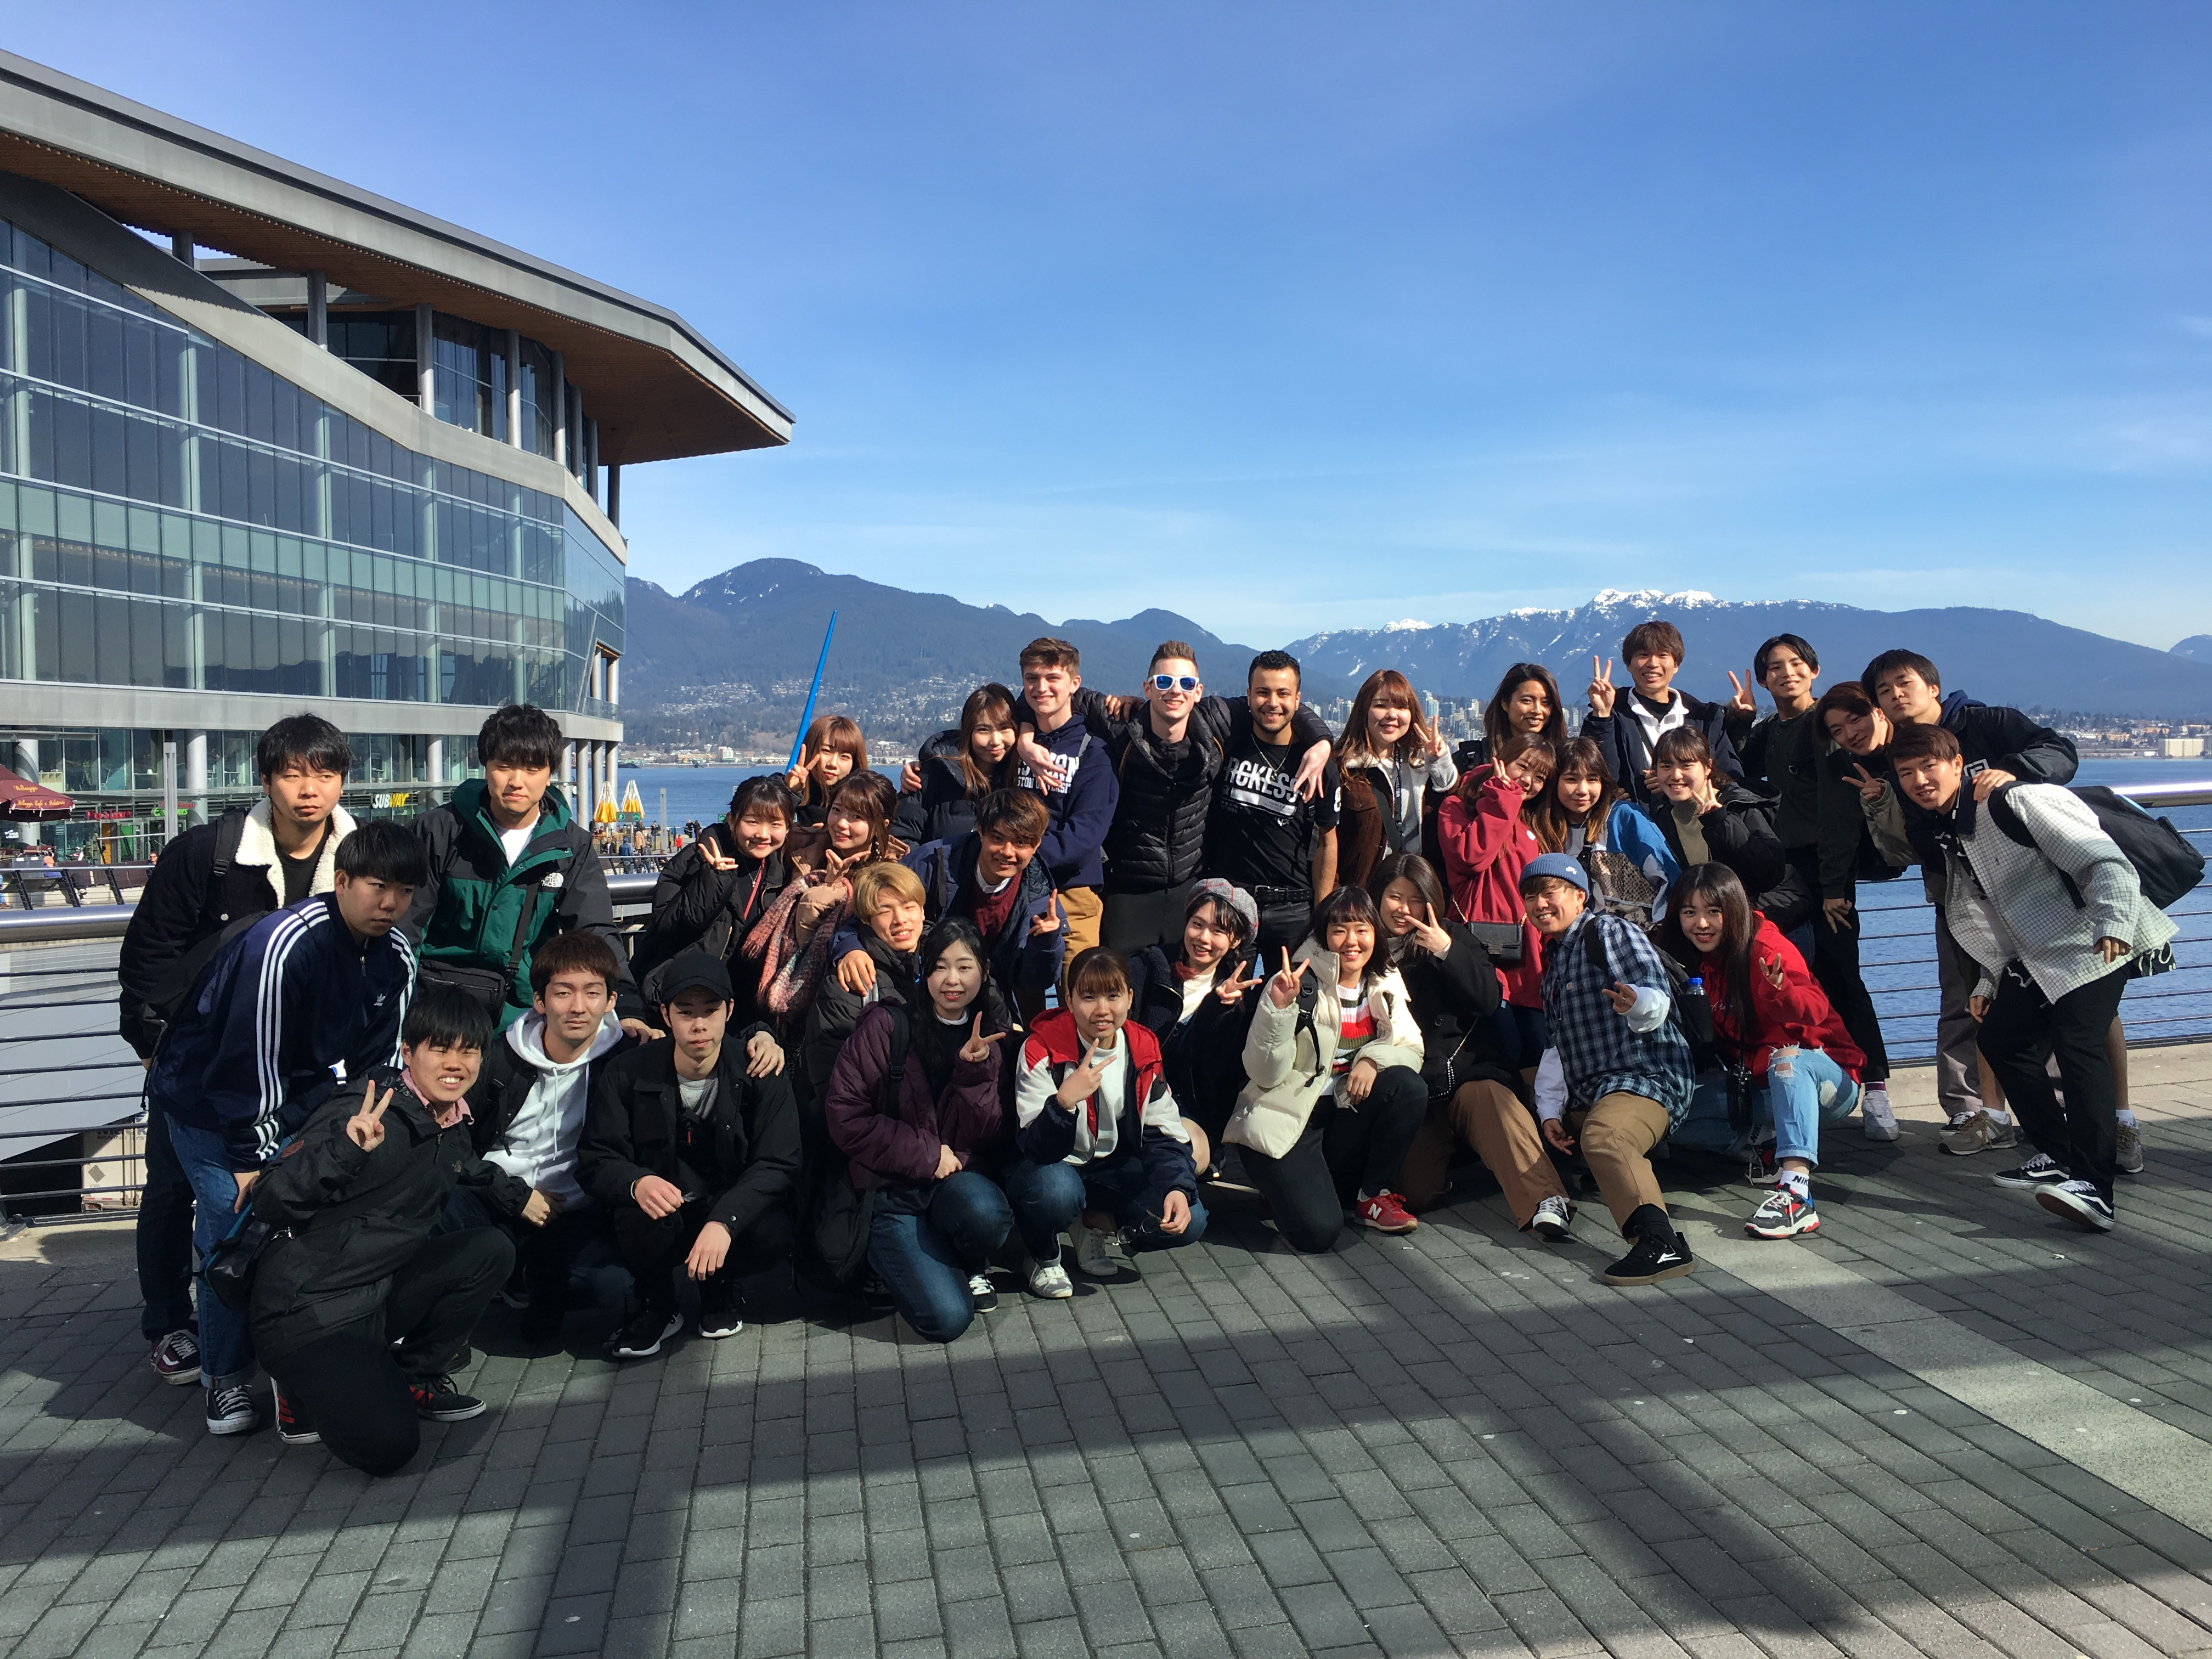 Group of students smiling on an excursion to Vancouver.